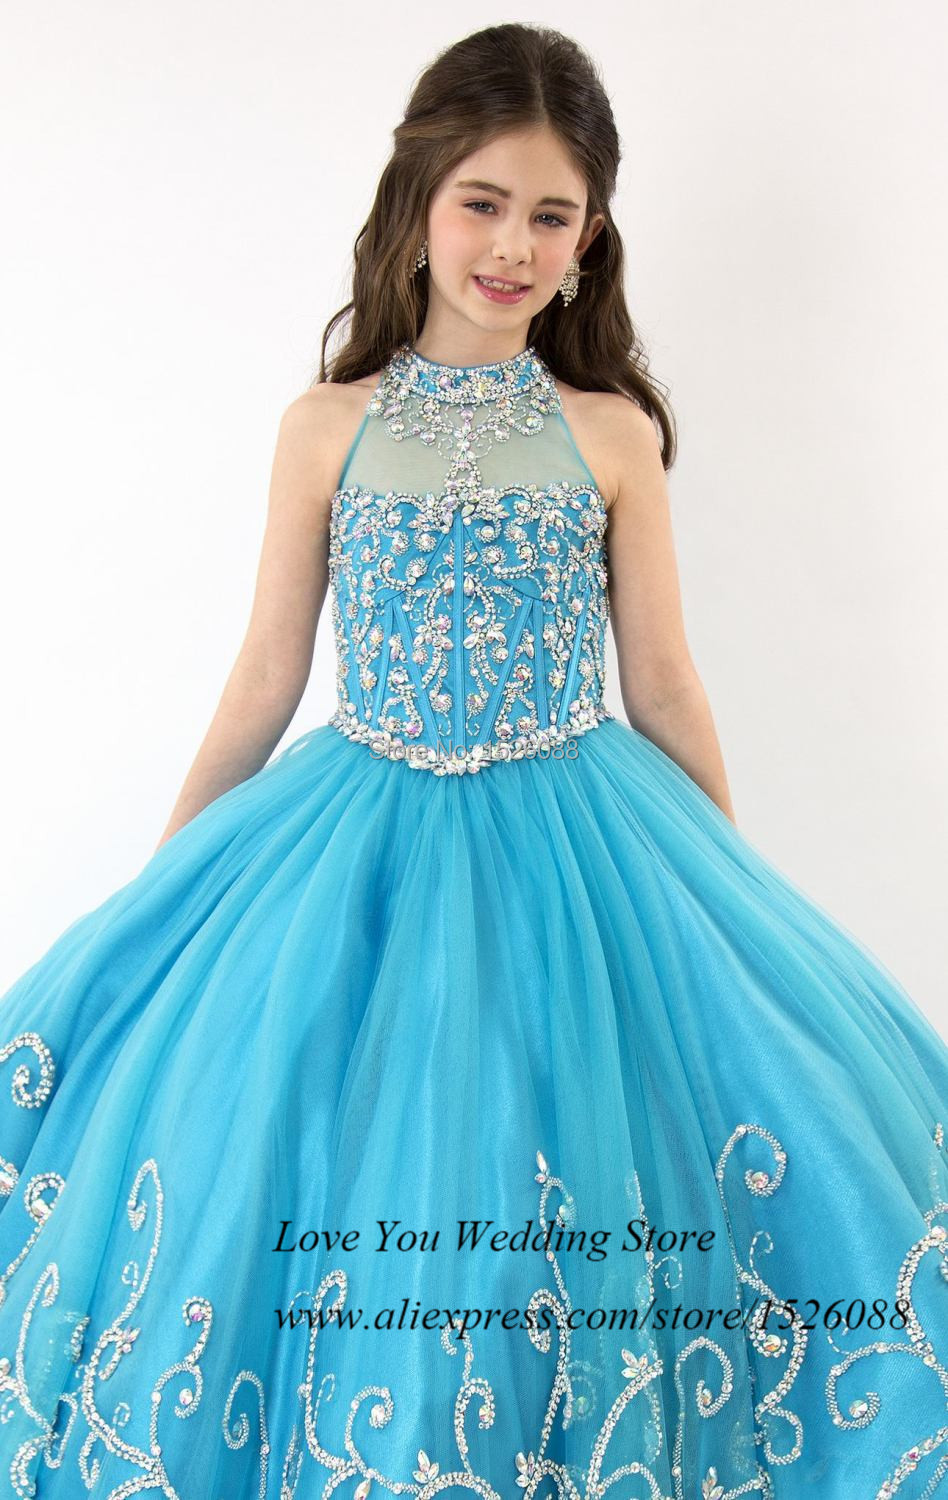 Princess blue modest ball gown flower girl dresses for weddings princess blue modest ball gown flower girl dresses for weddings 2015 junior bridesmaid dress sleeveless prom dress children in flower girl dresses from ombrellifo Image collections